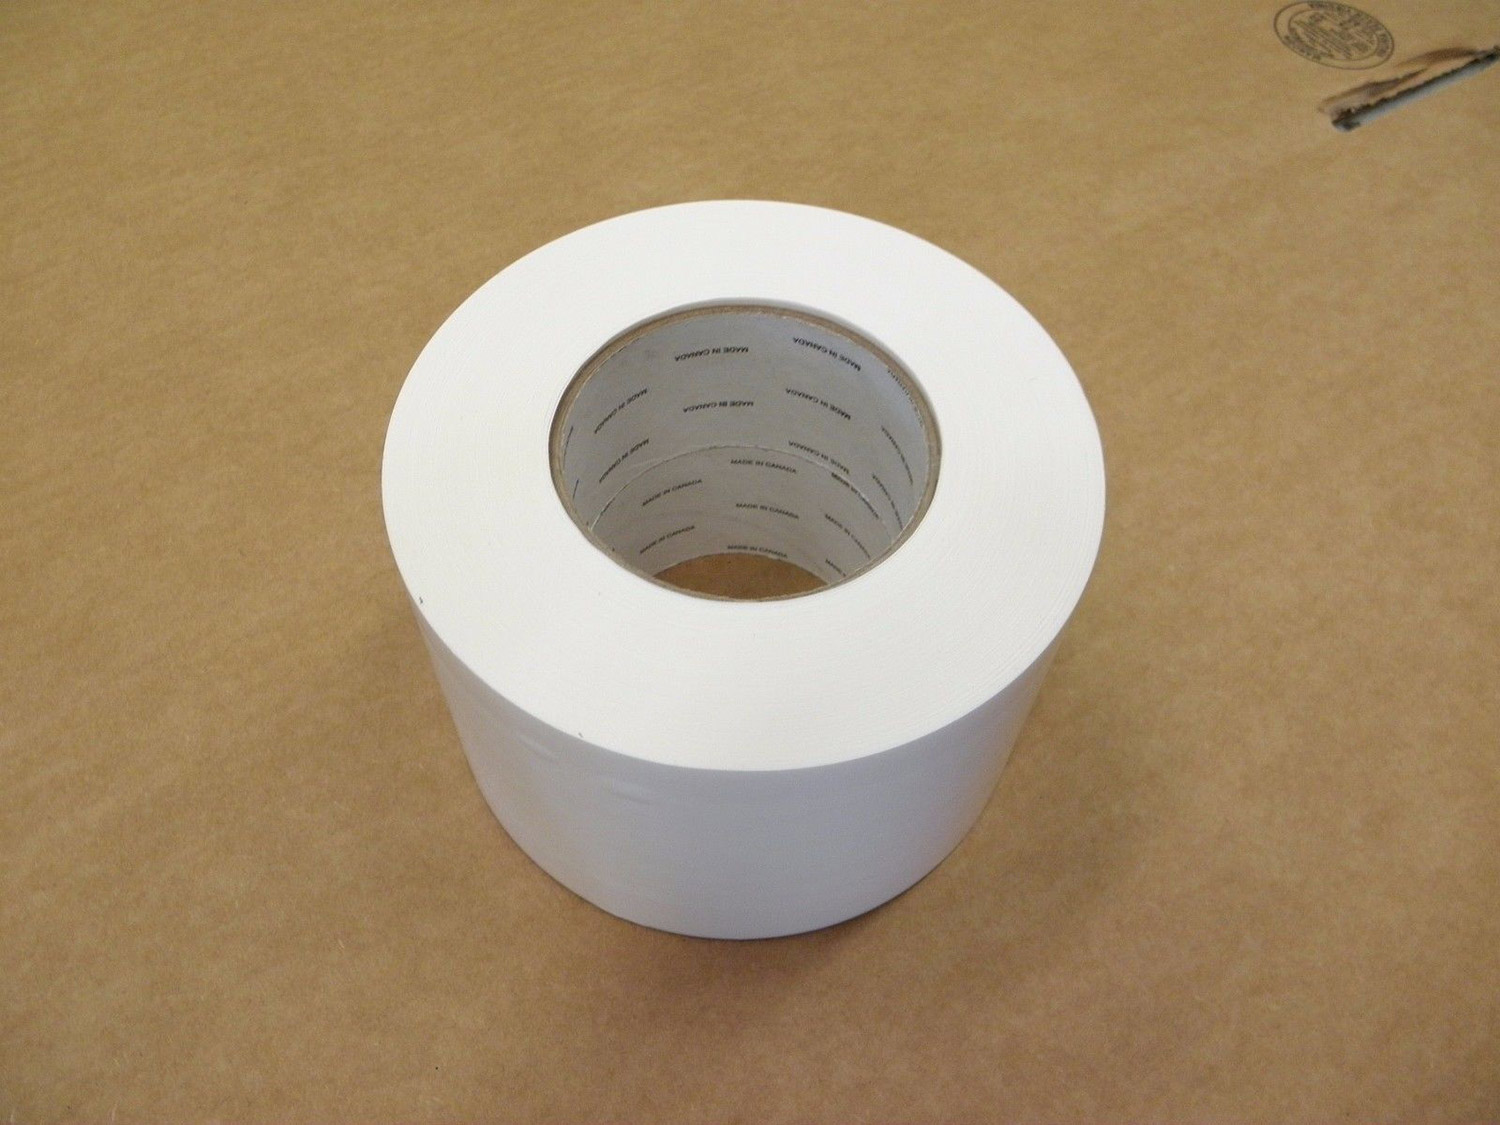 red 4in X 180ft for sale online Vapor Barrier Seam Tape for Crawlspace Carpet and Floors